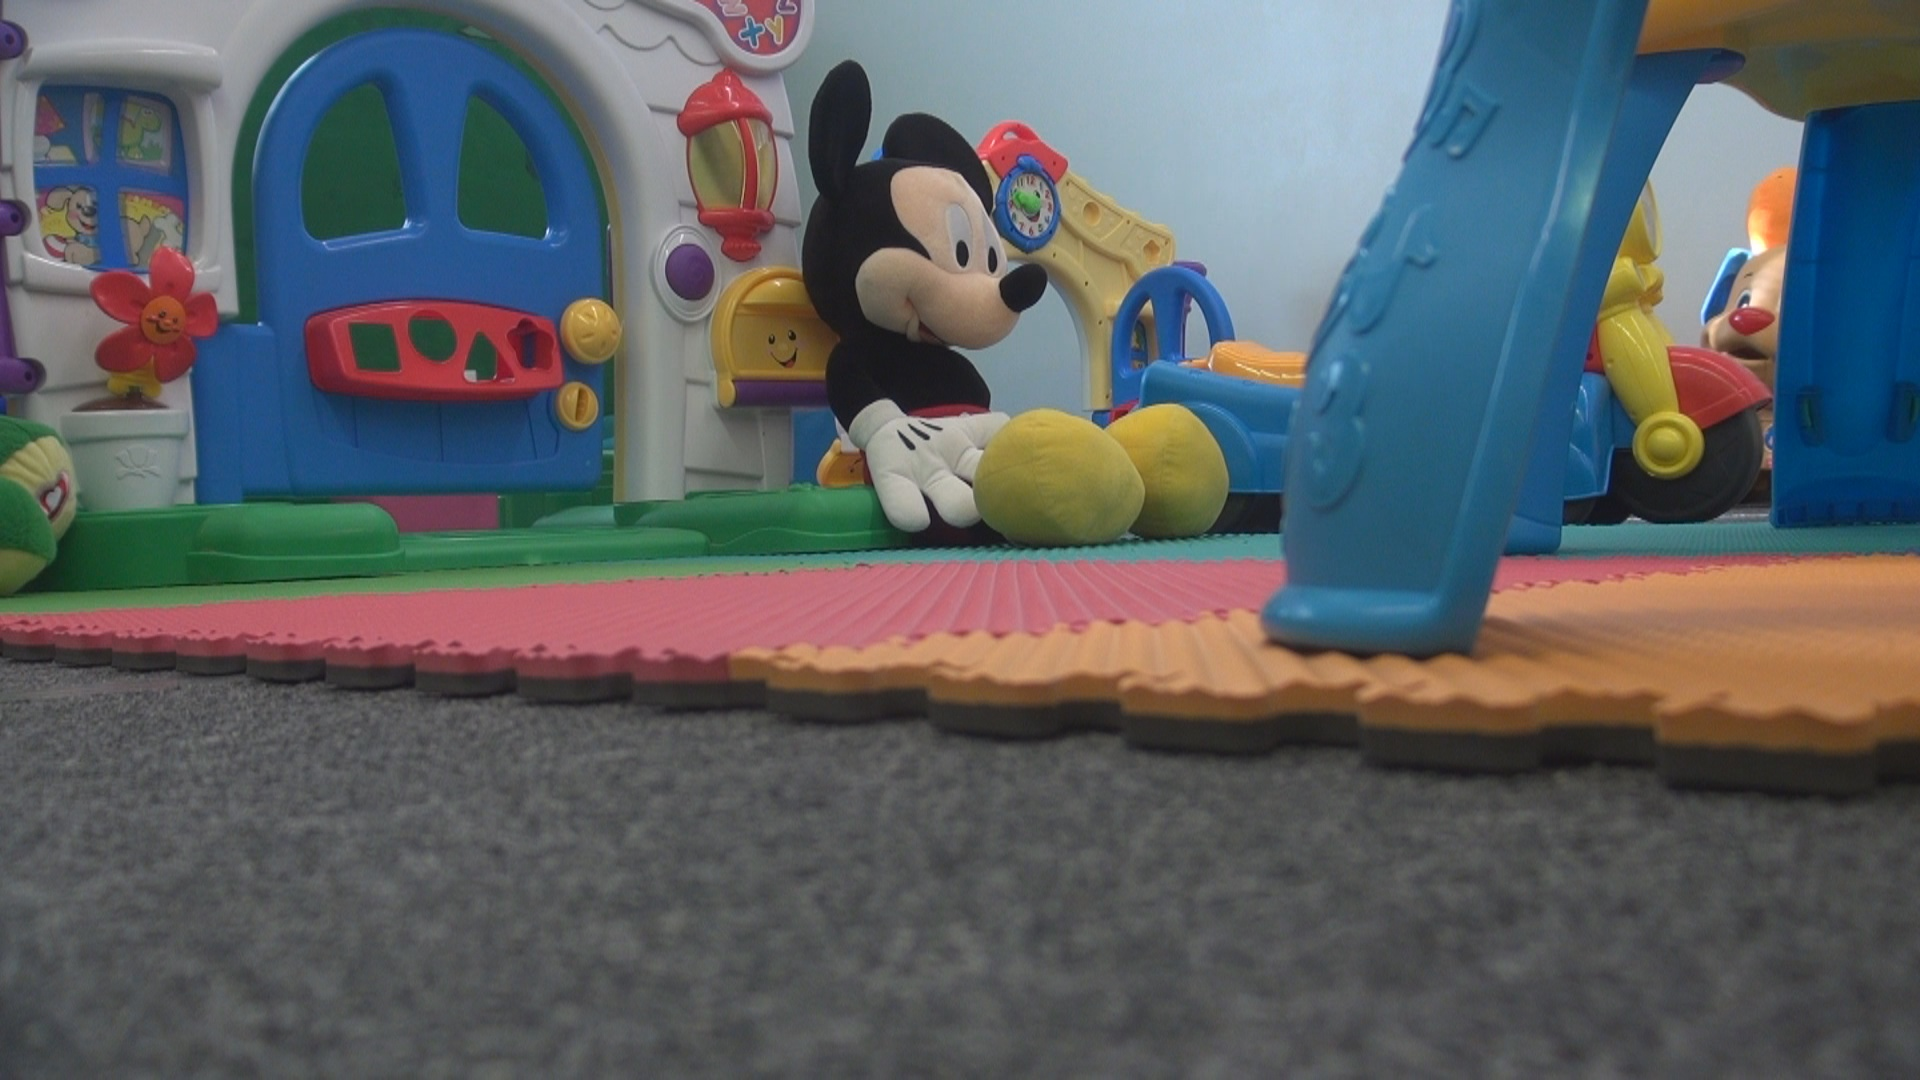 New daycare center in Fairmont